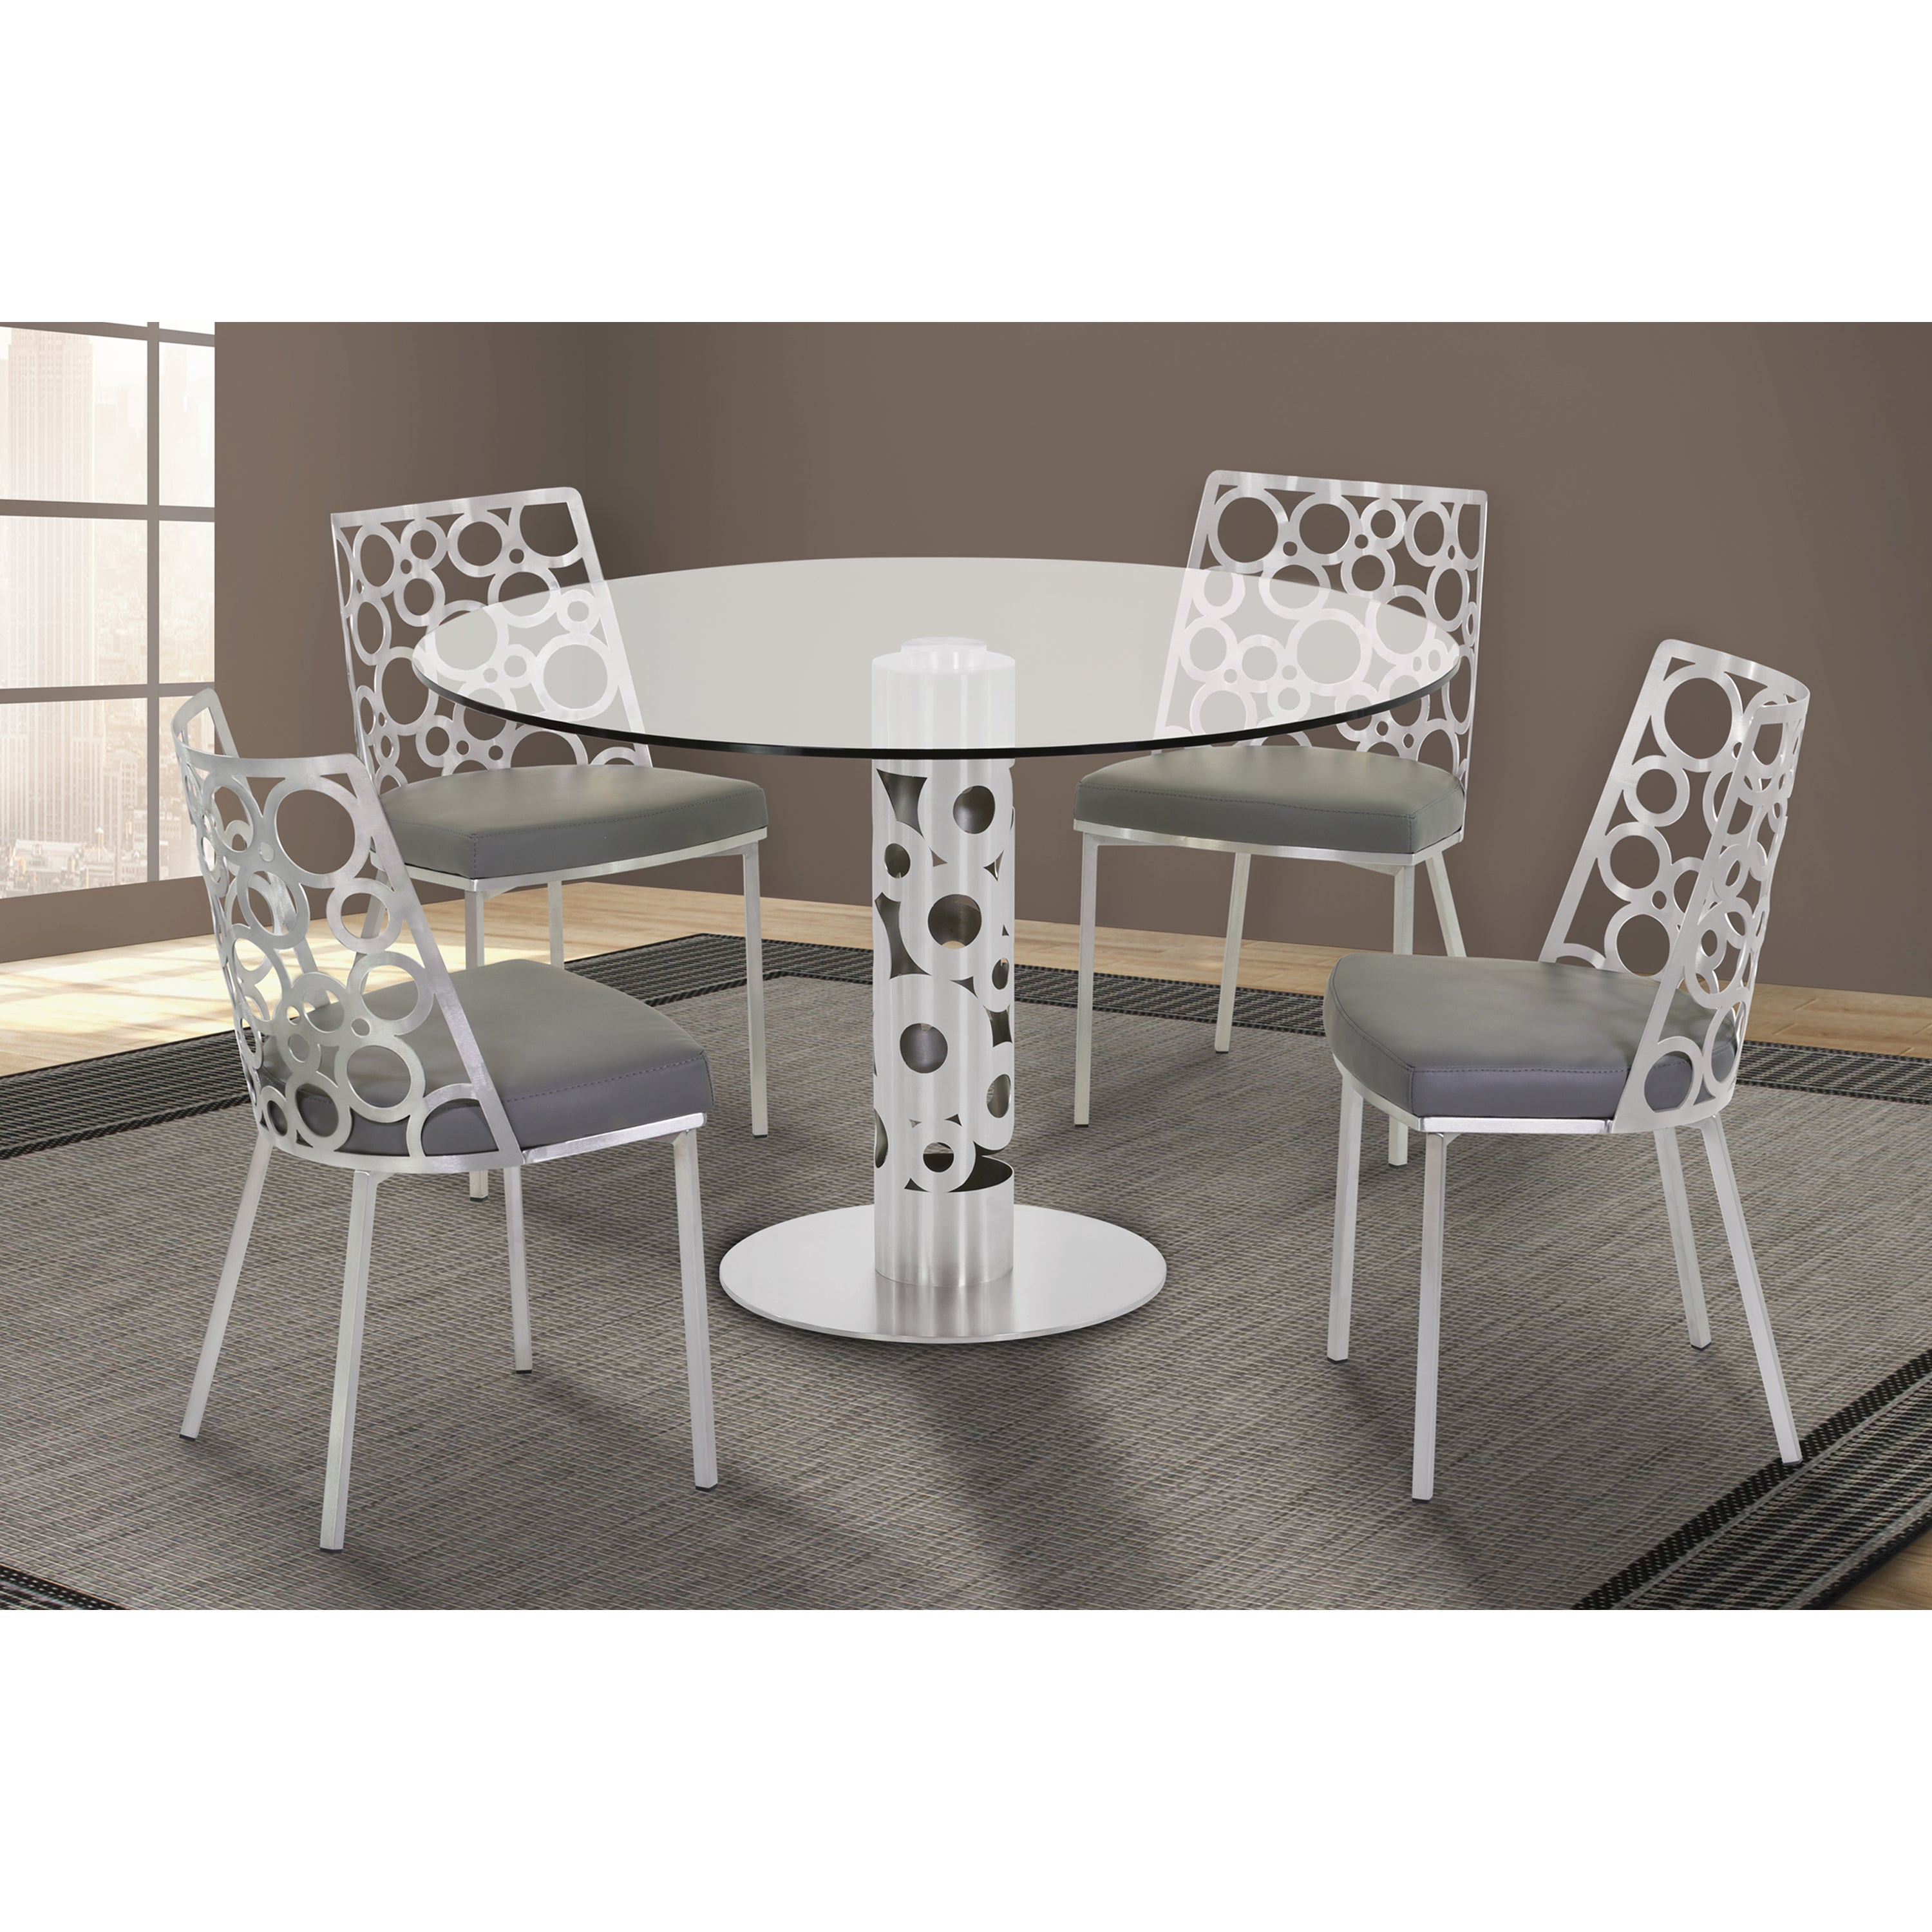 ee03656b3fd8 Armen Living Berlin Round Dining Table in Brushed Stainless Steel and 48-inch  Glass Top